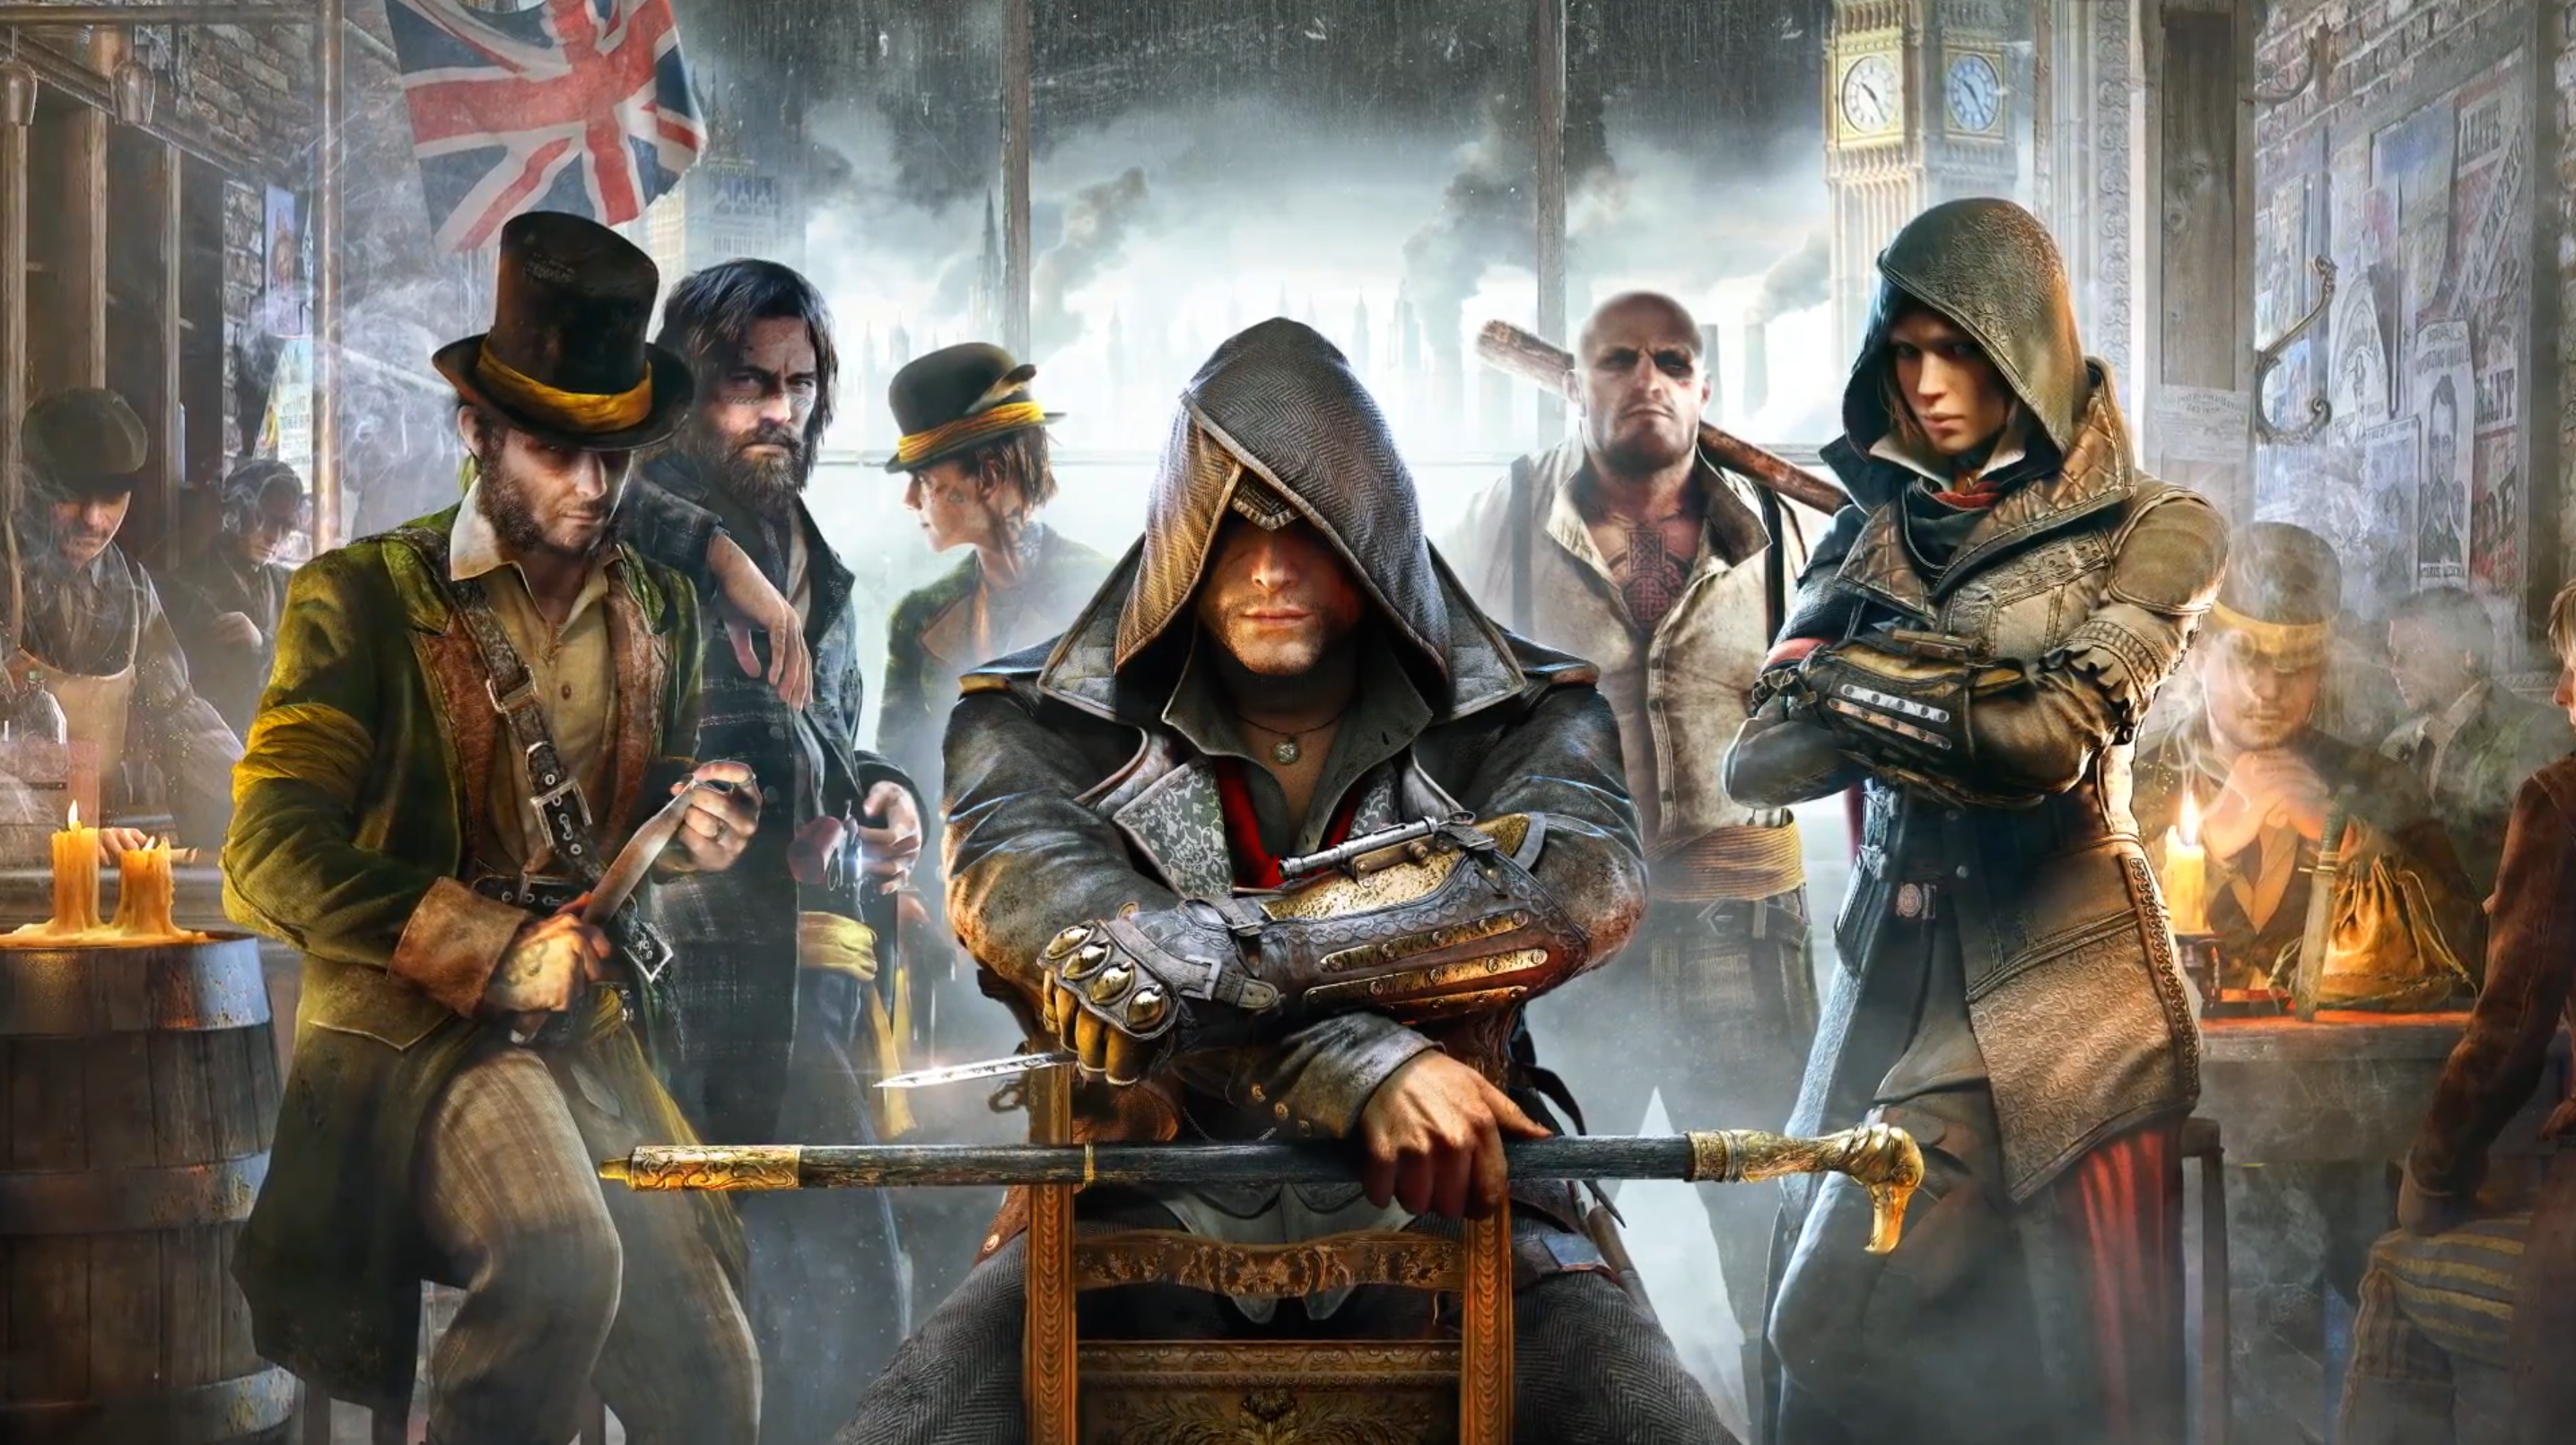 Next Assassin's Creed will herald Ubisoft's new, less scripted narrative approach